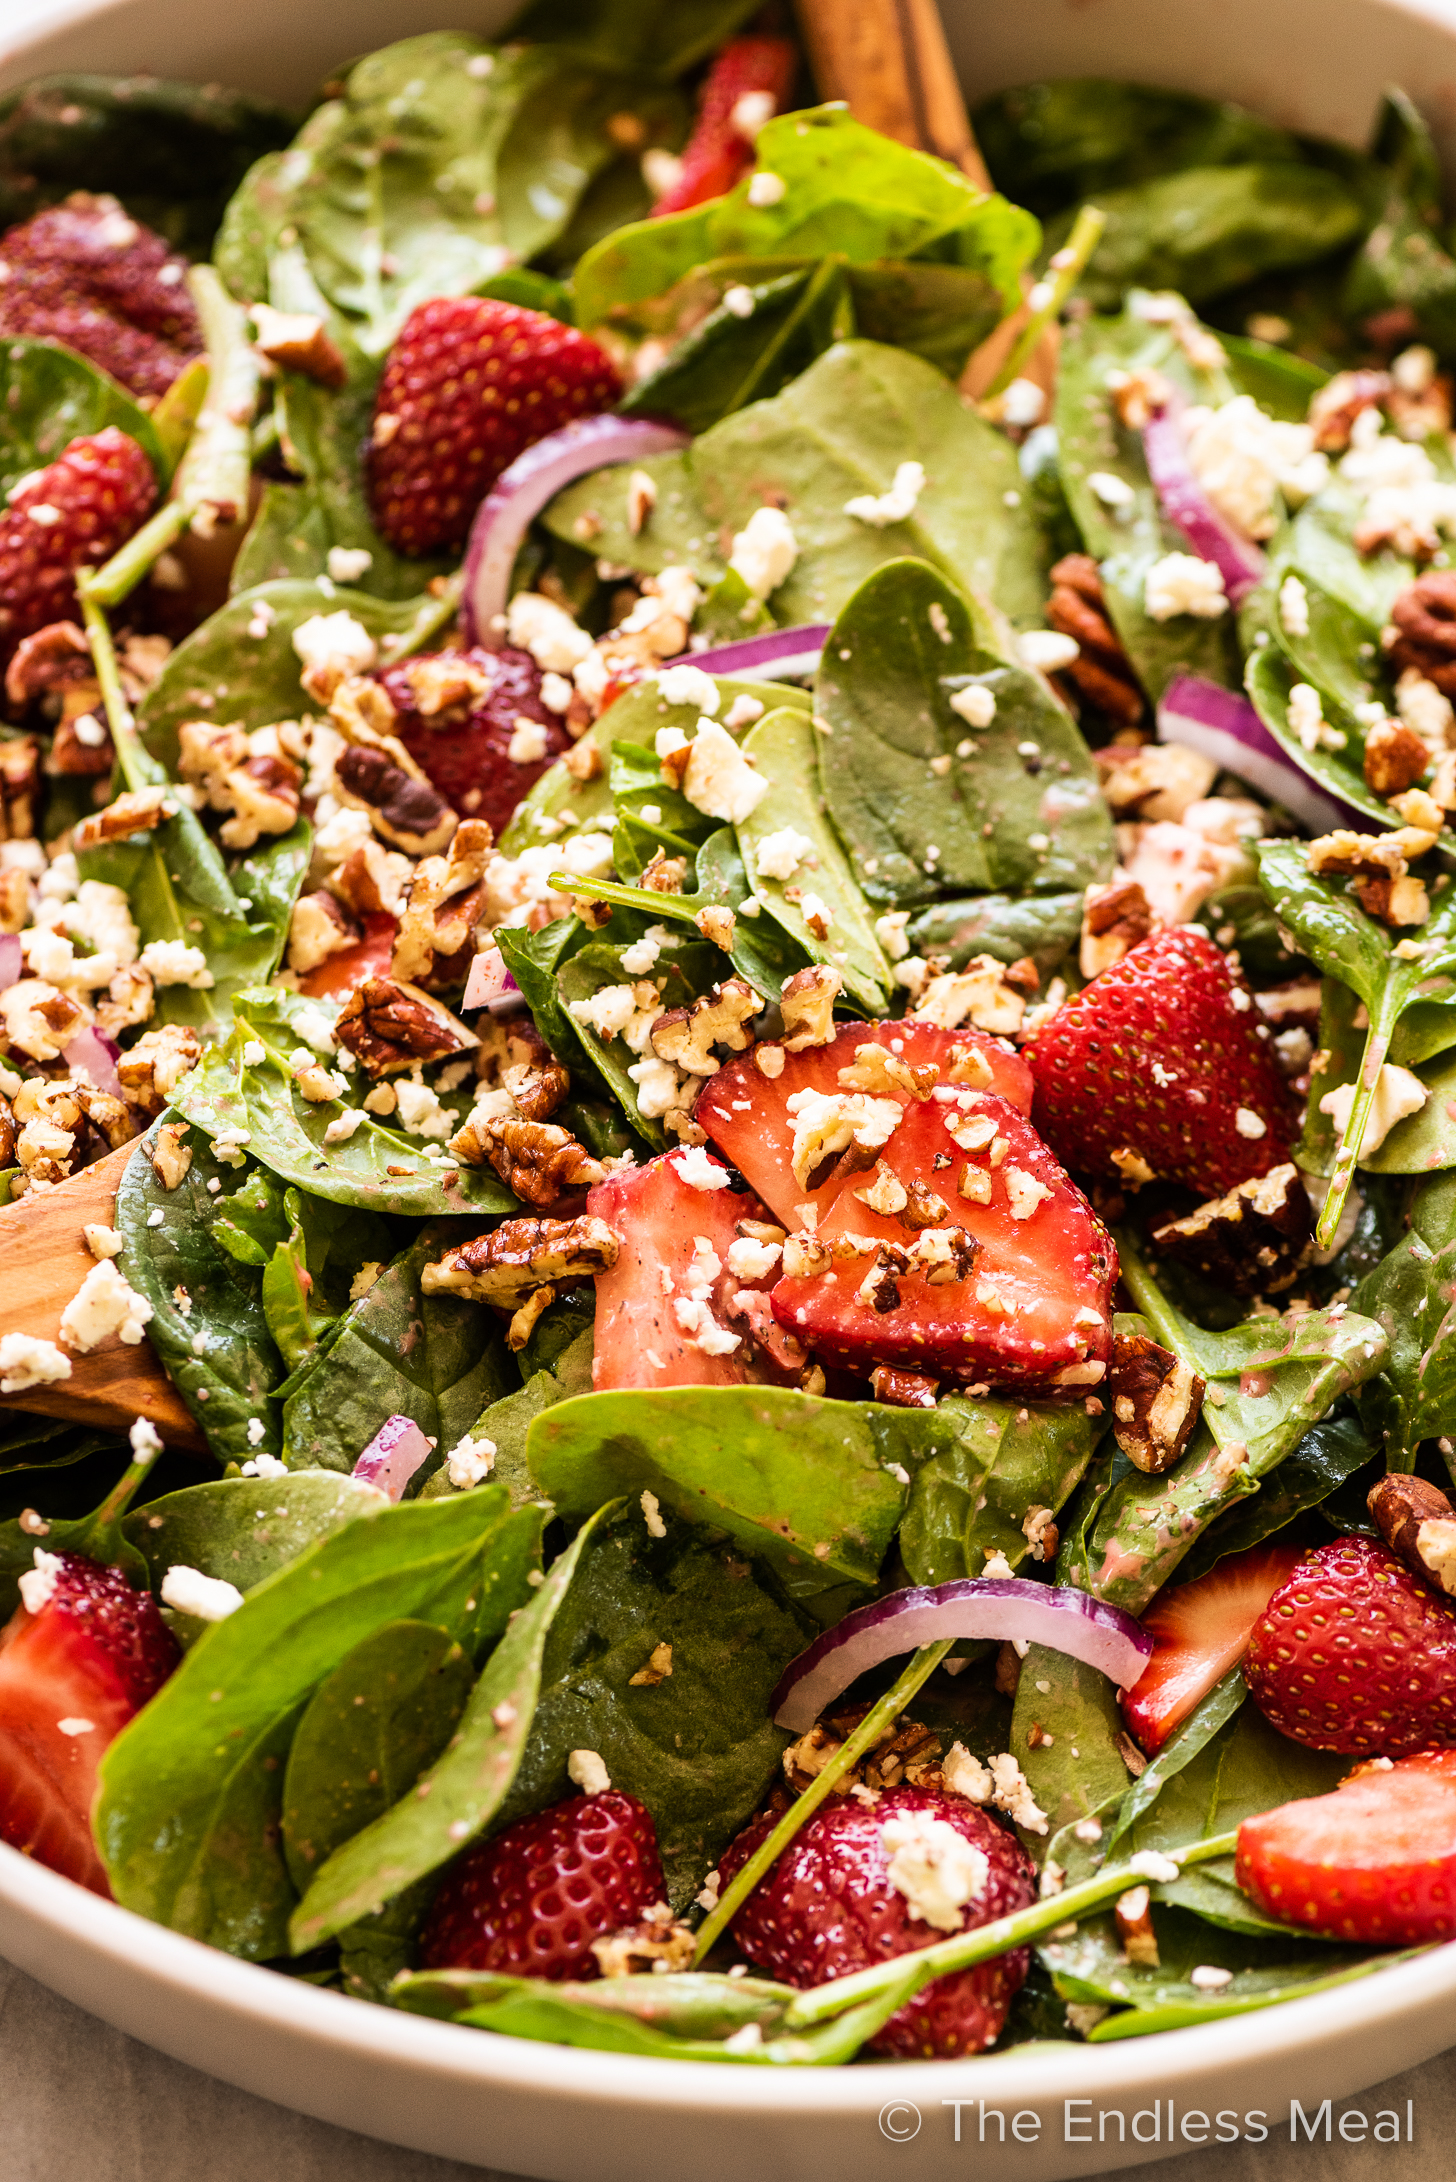 A close up of spinach and strawberry salad.